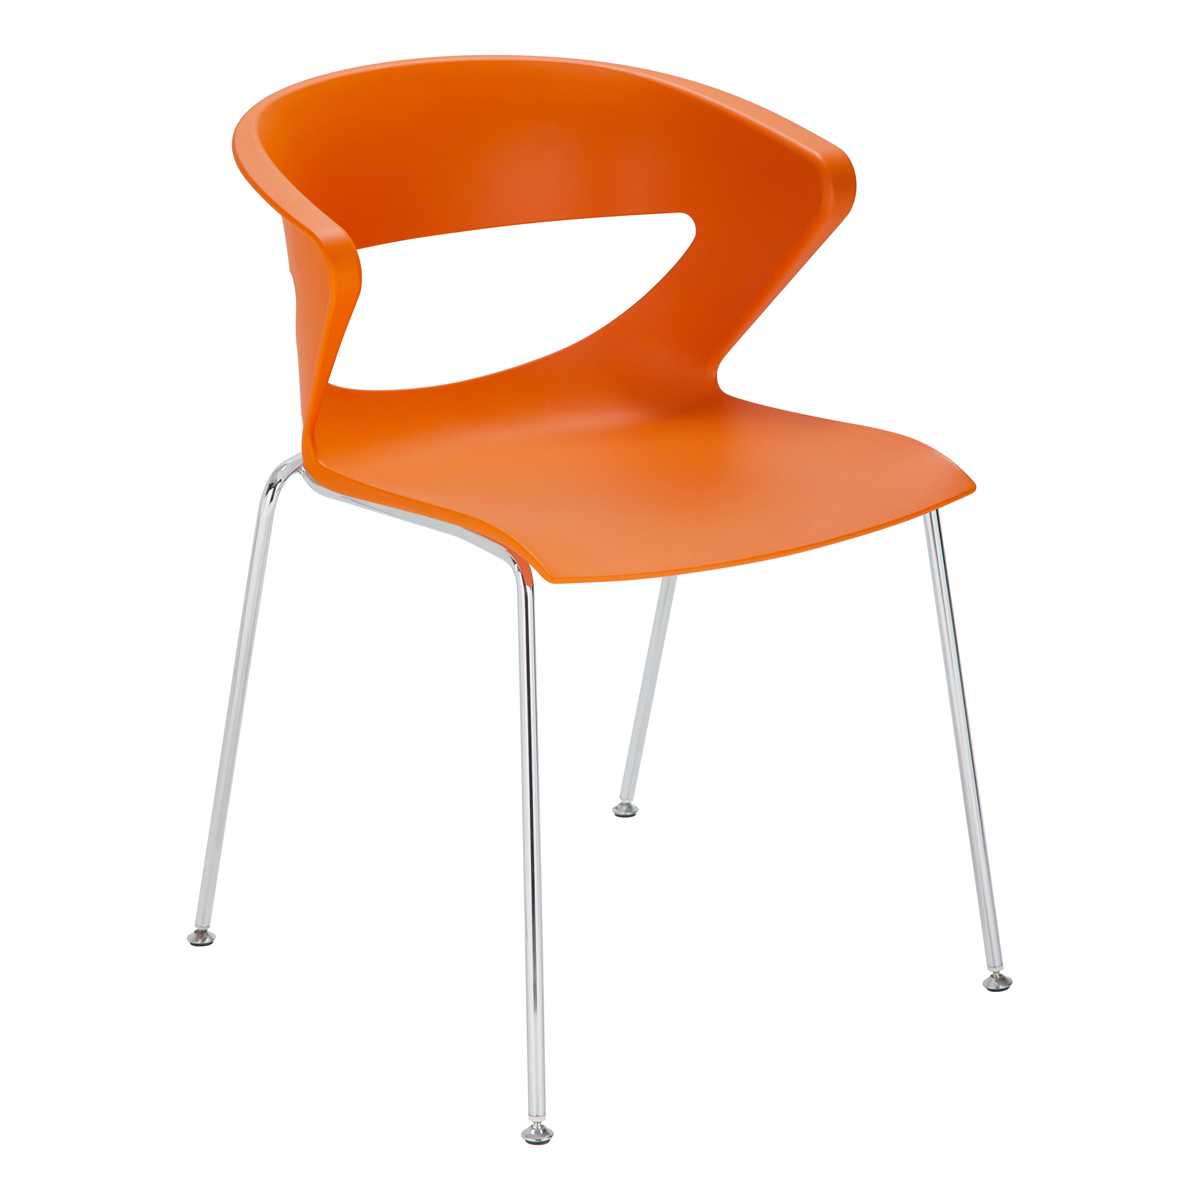 Stuhl Kicca, orange